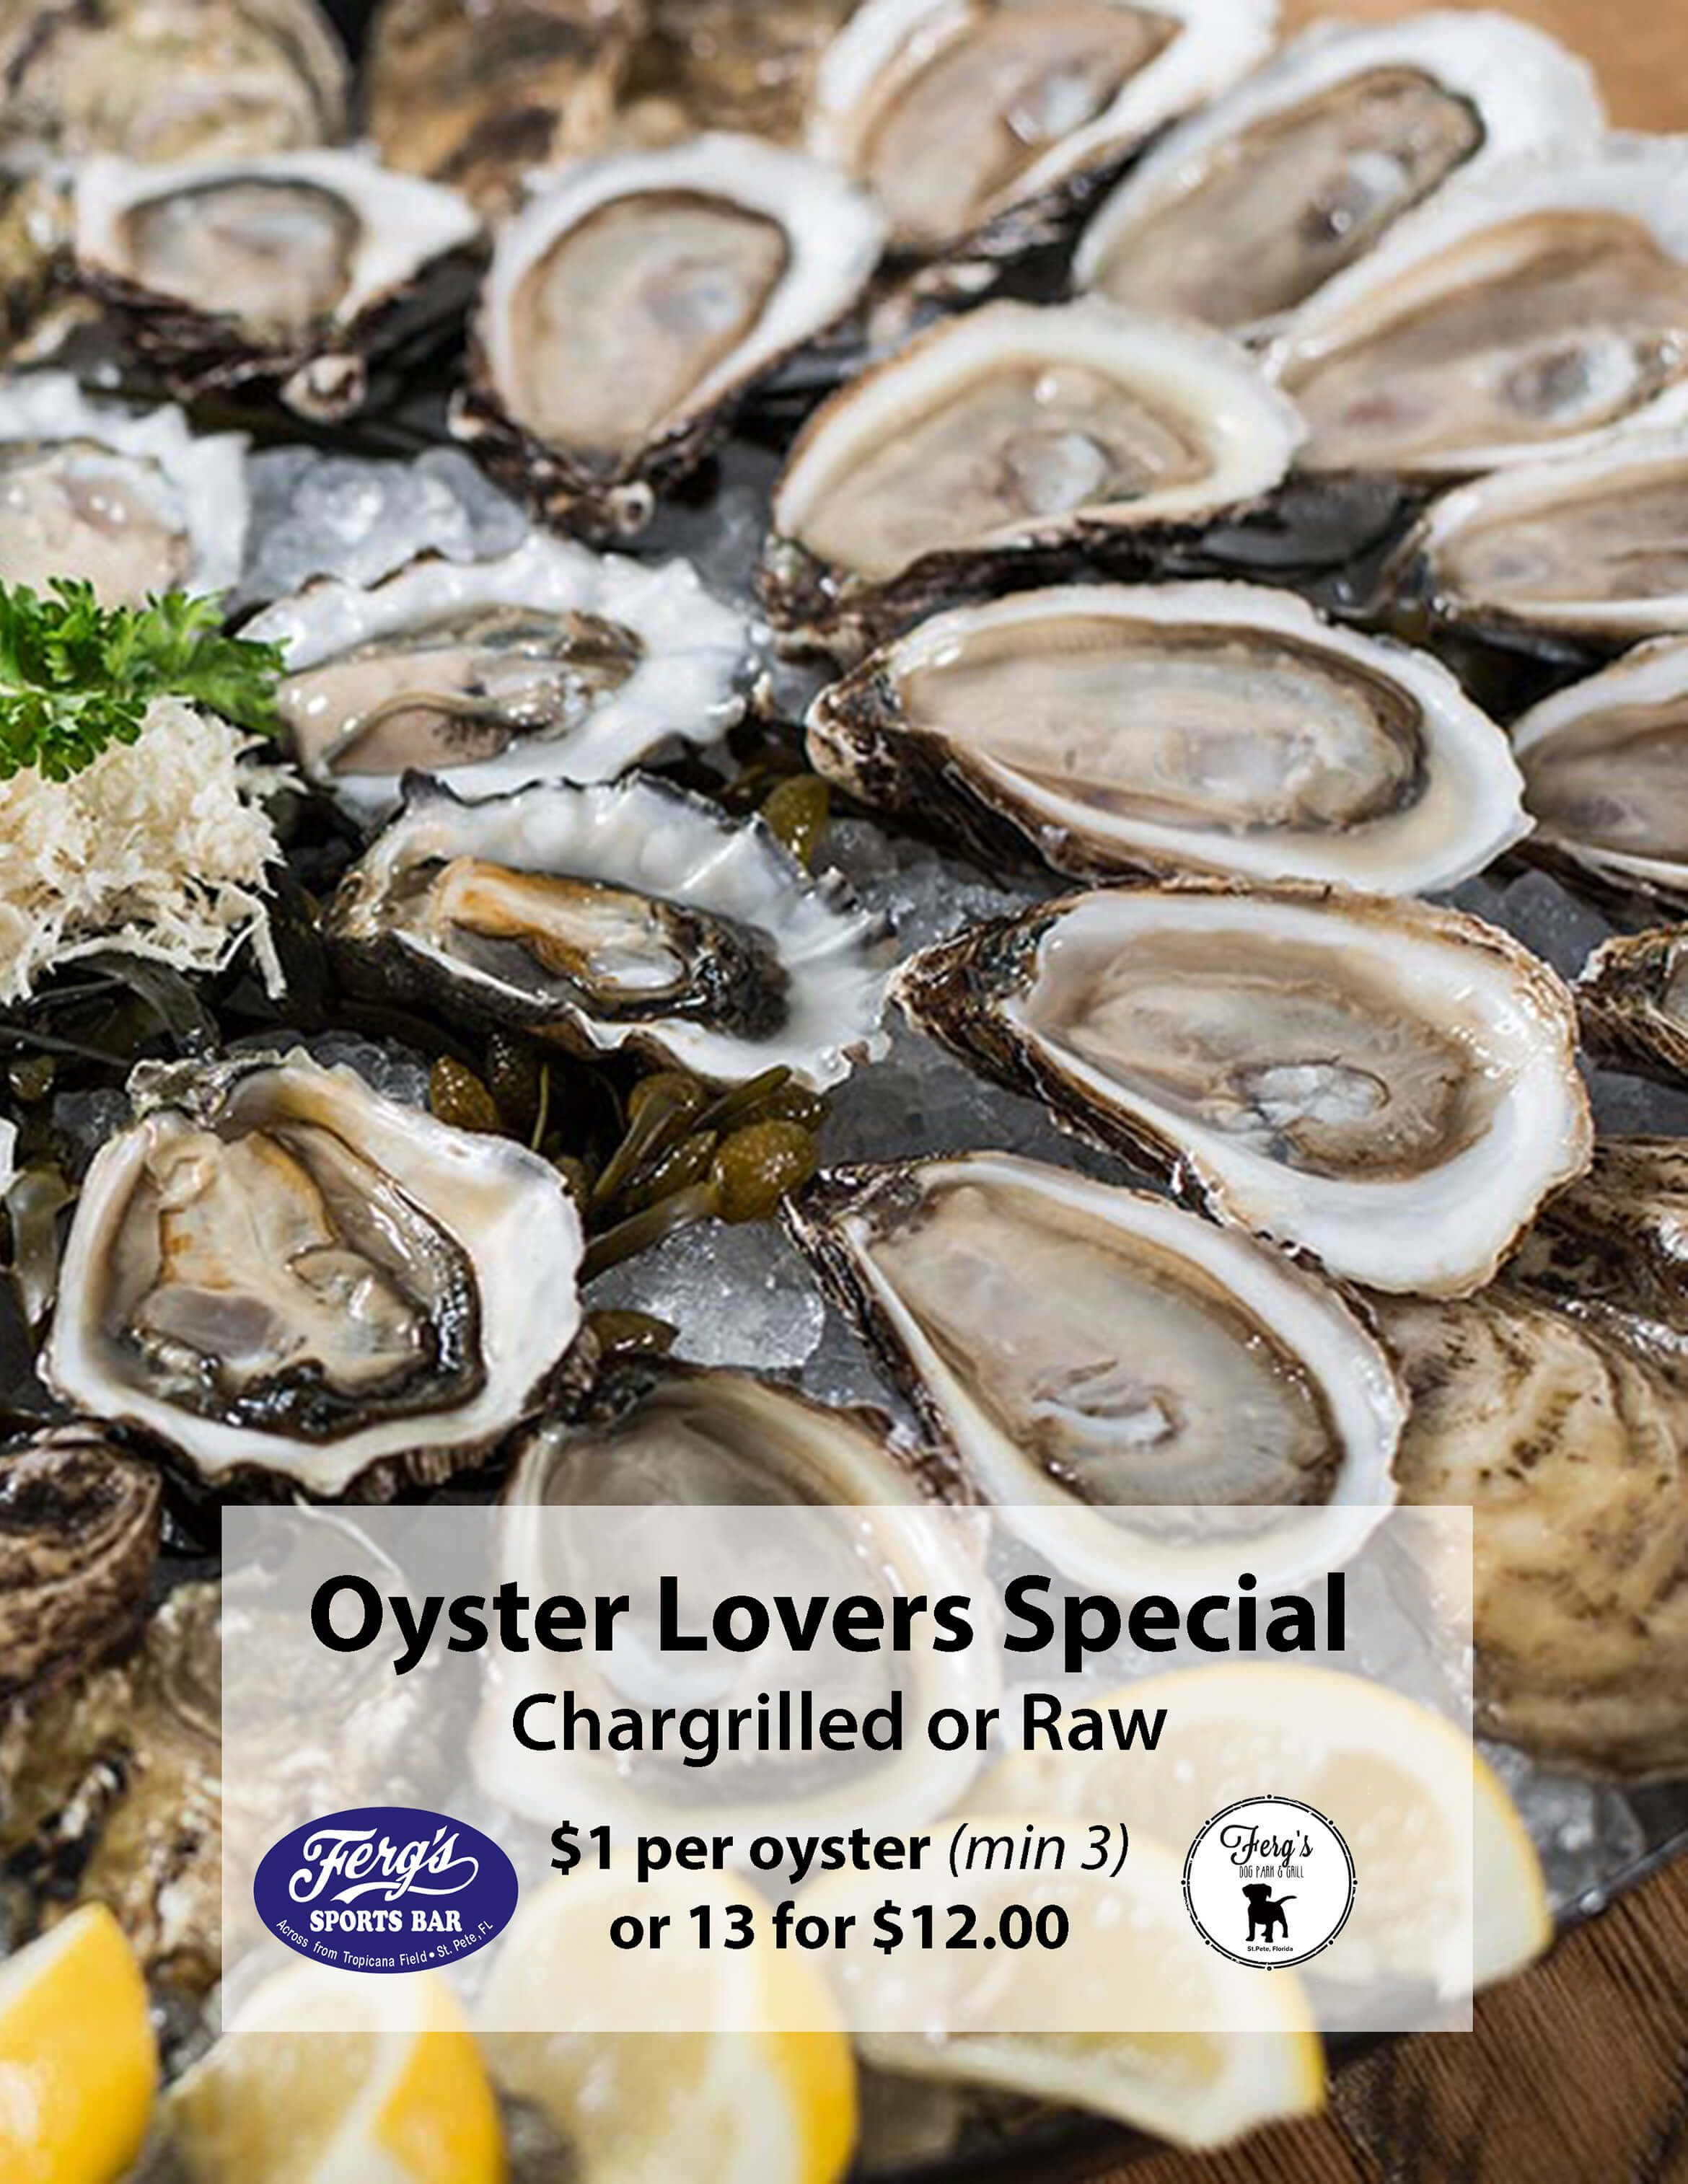 Oyster Lovers Special